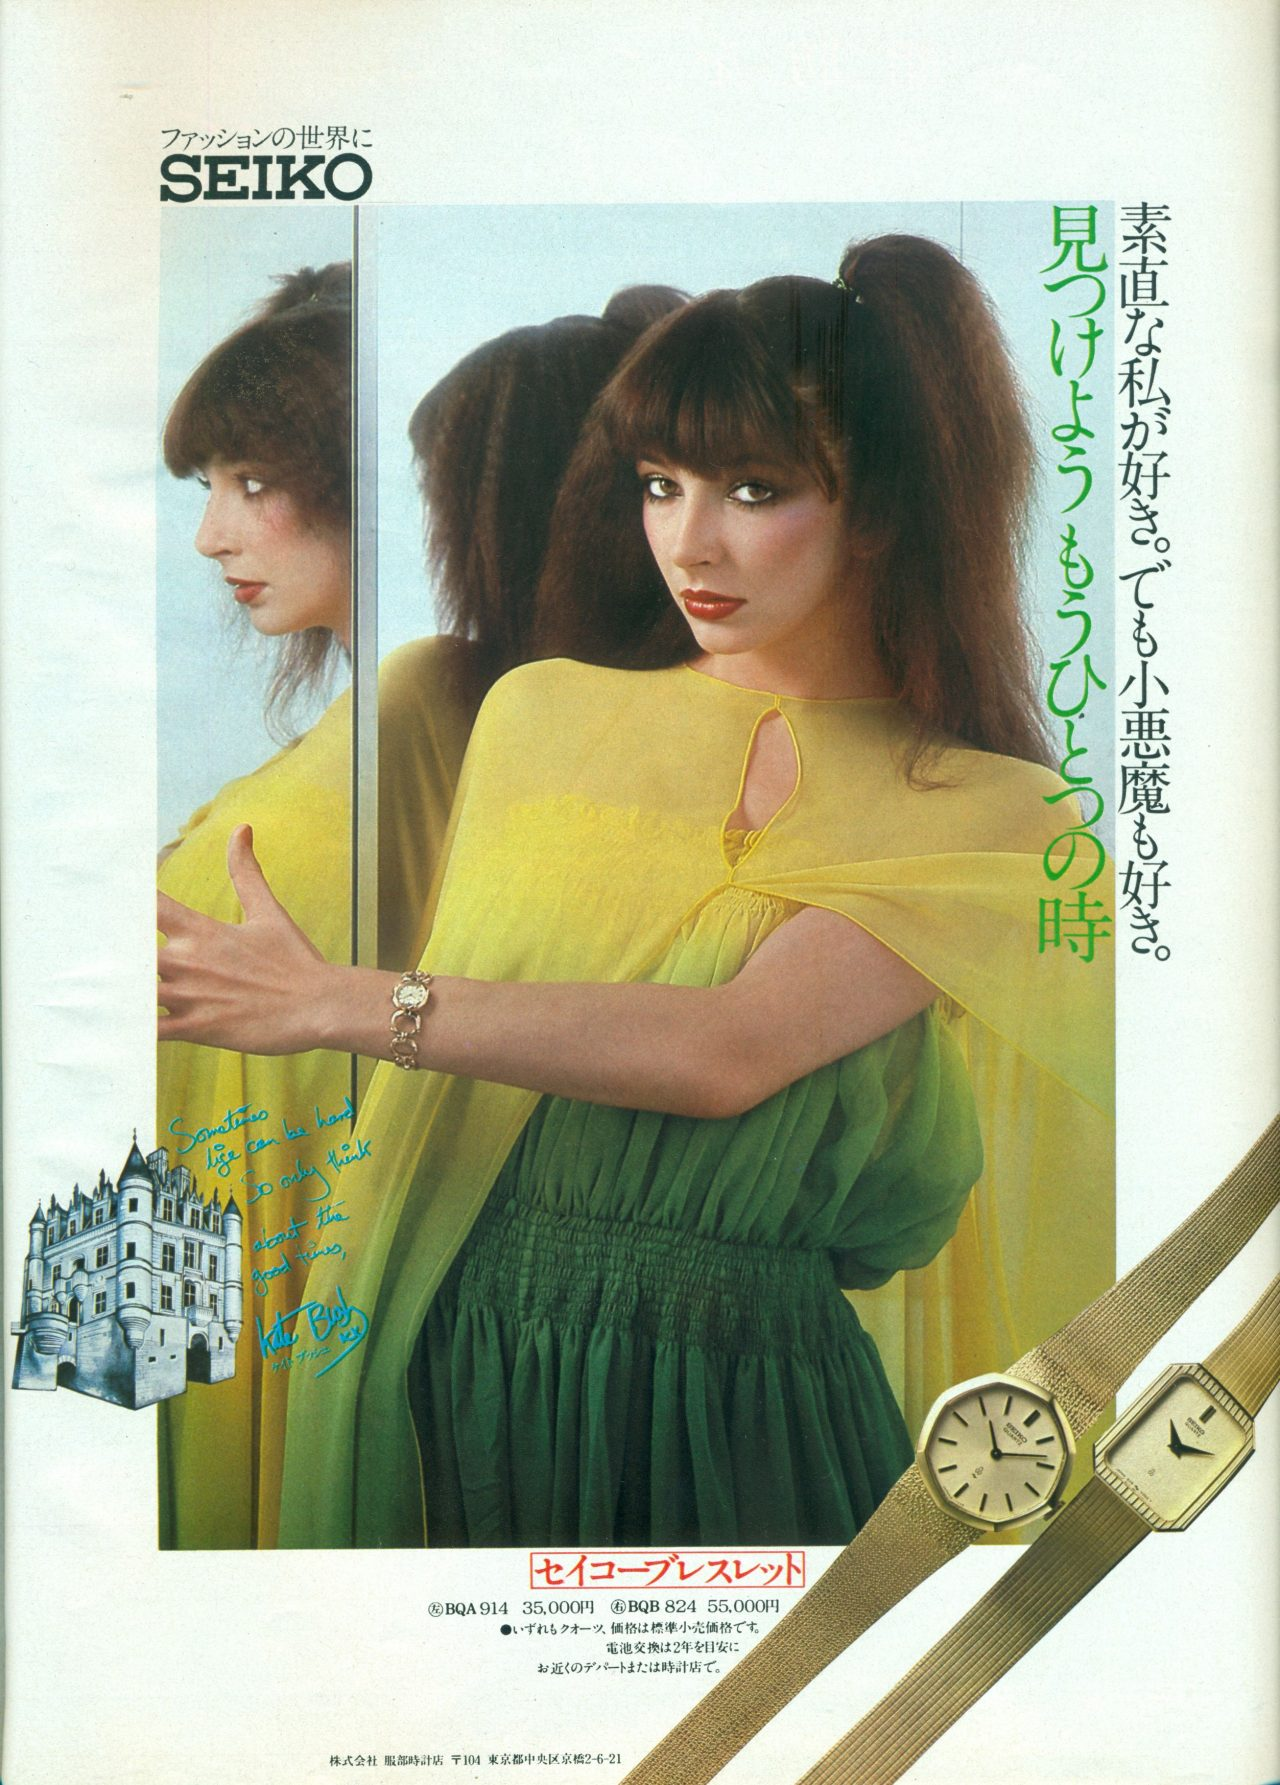 In 1978 Kate Bush Sold Seiko Watches In Japan Flashbak